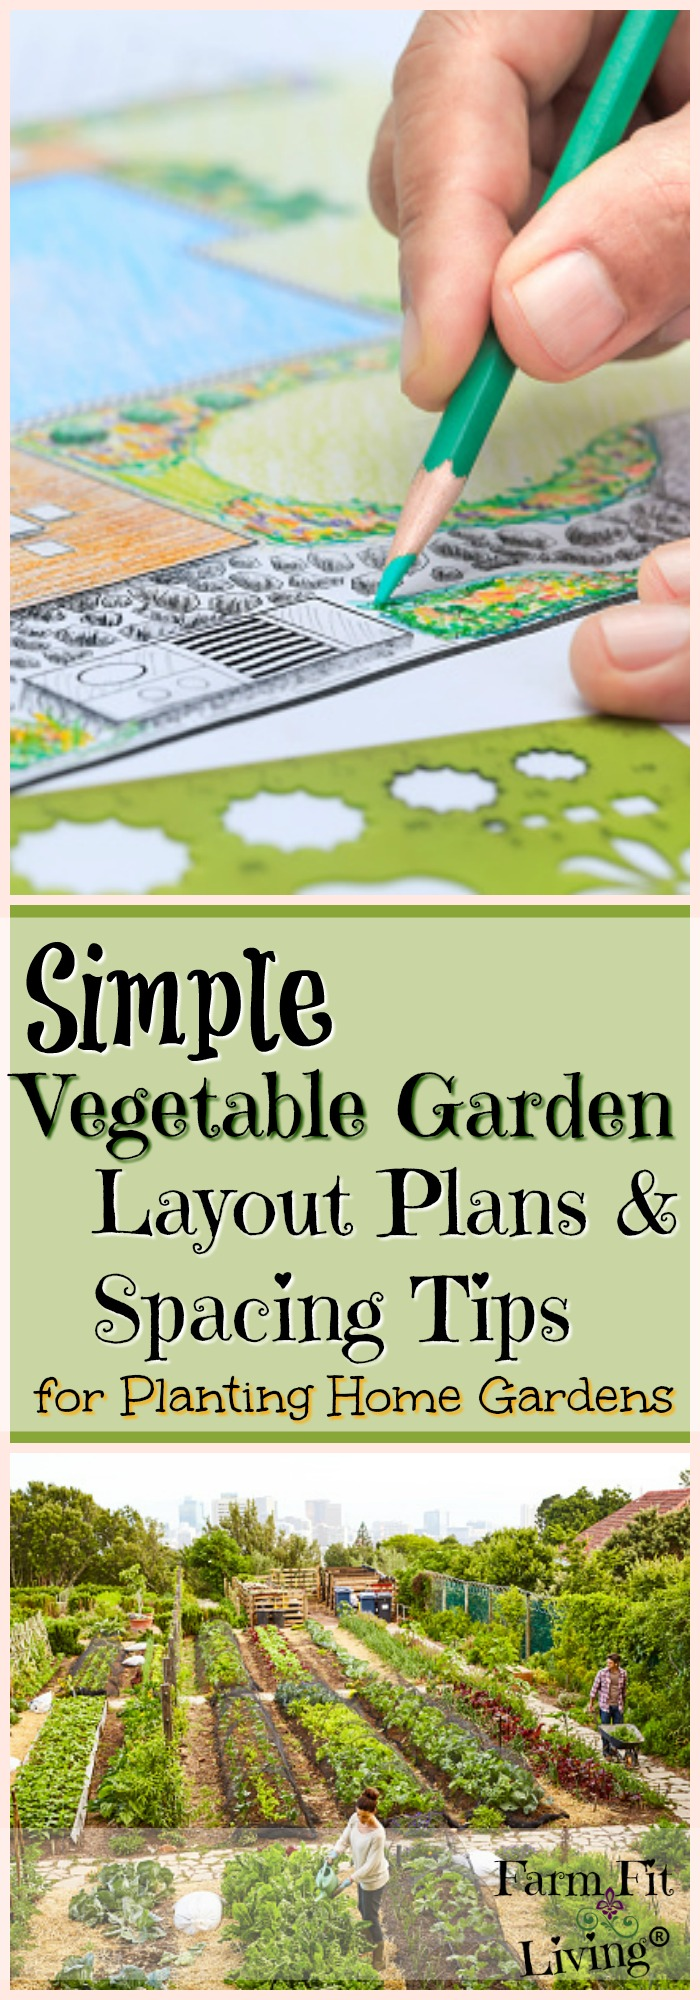 Are you looking for more simple vegetable garden layout plans and spacing tips to maximize efficiency in your home garden space?